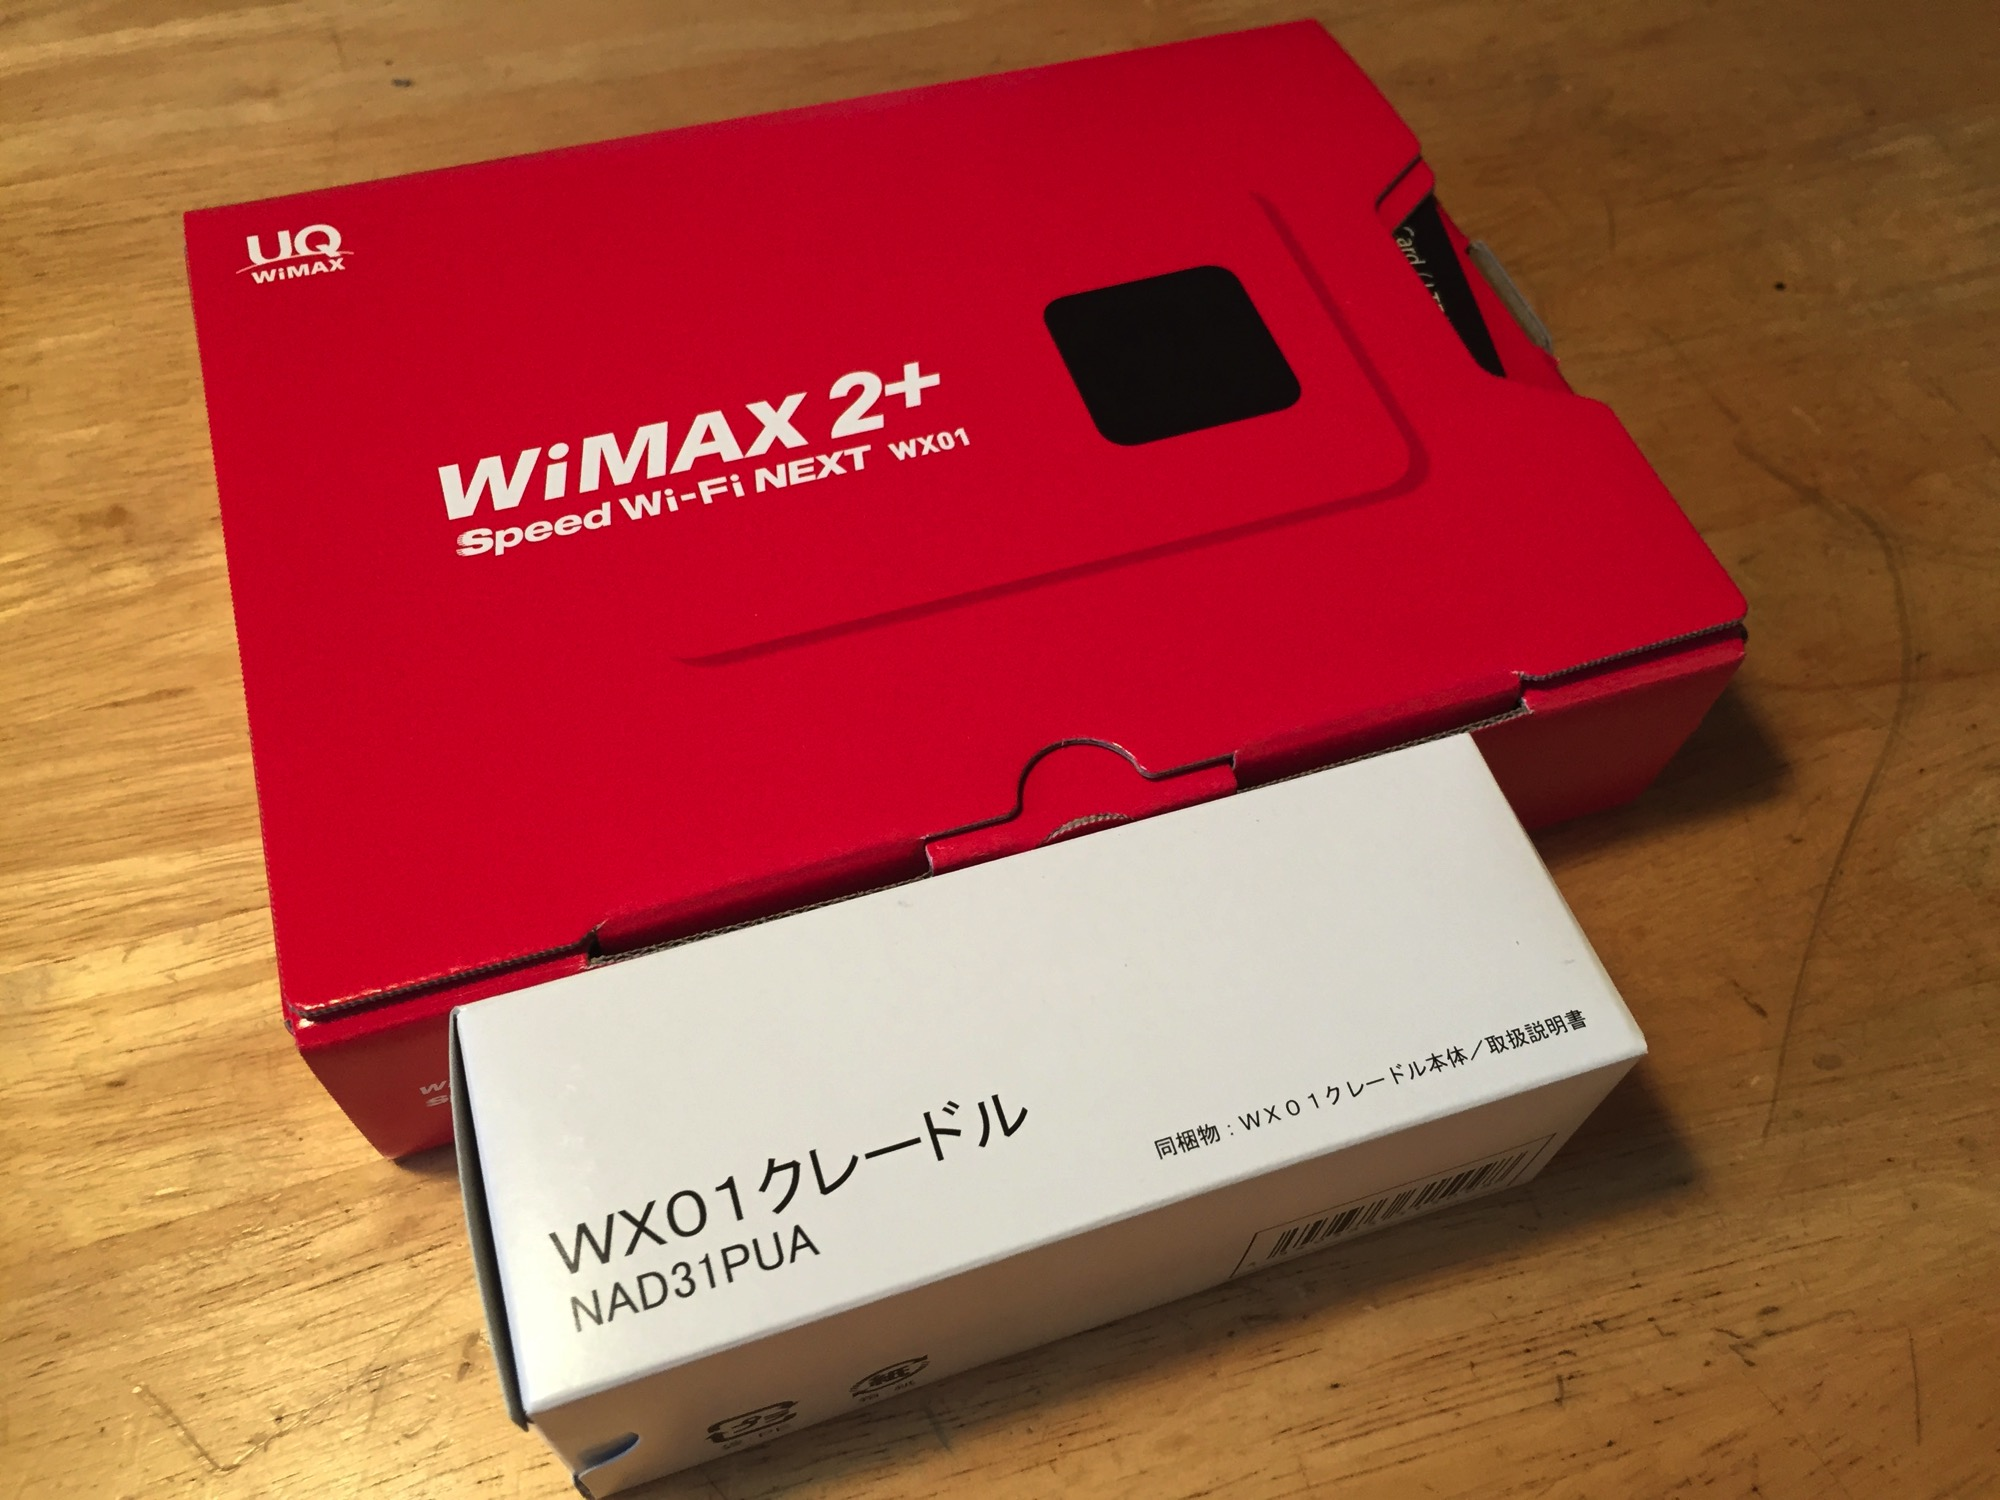 WiMAX2 WX01 00001